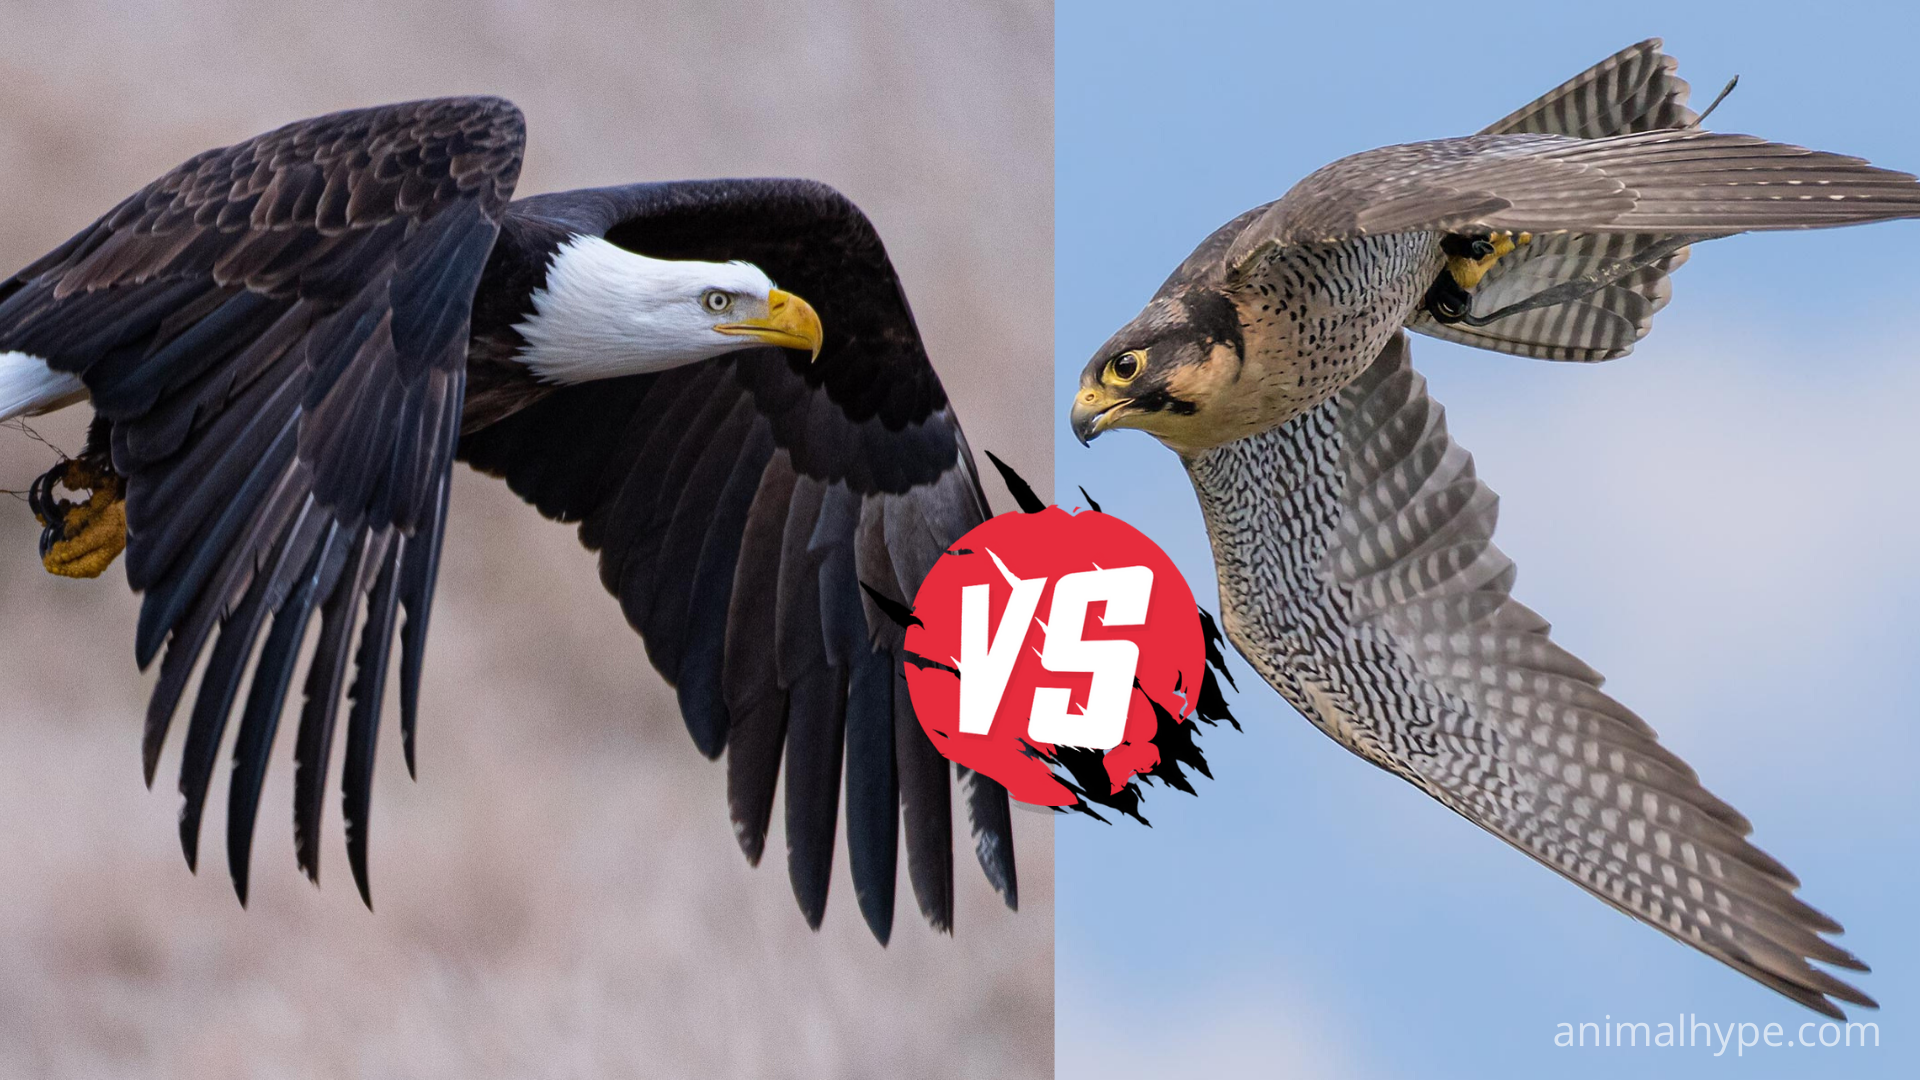 Difference between eagle and falcon